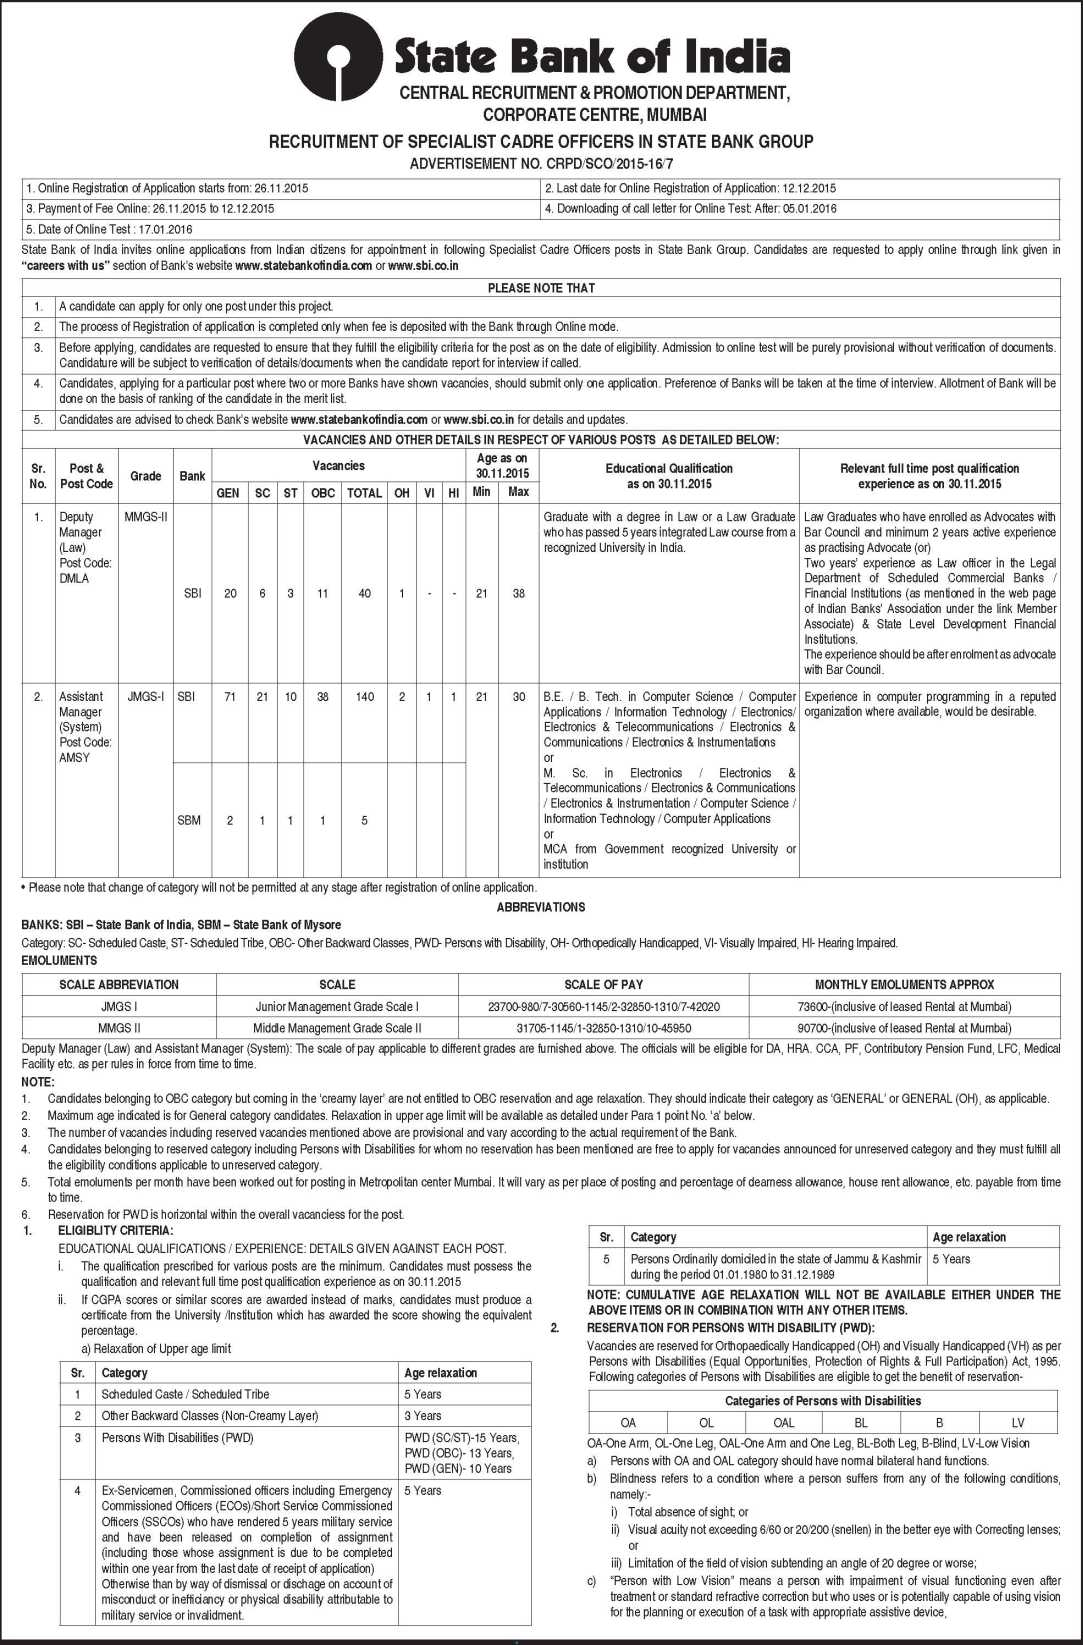 state bank of india recruitment 2012-13